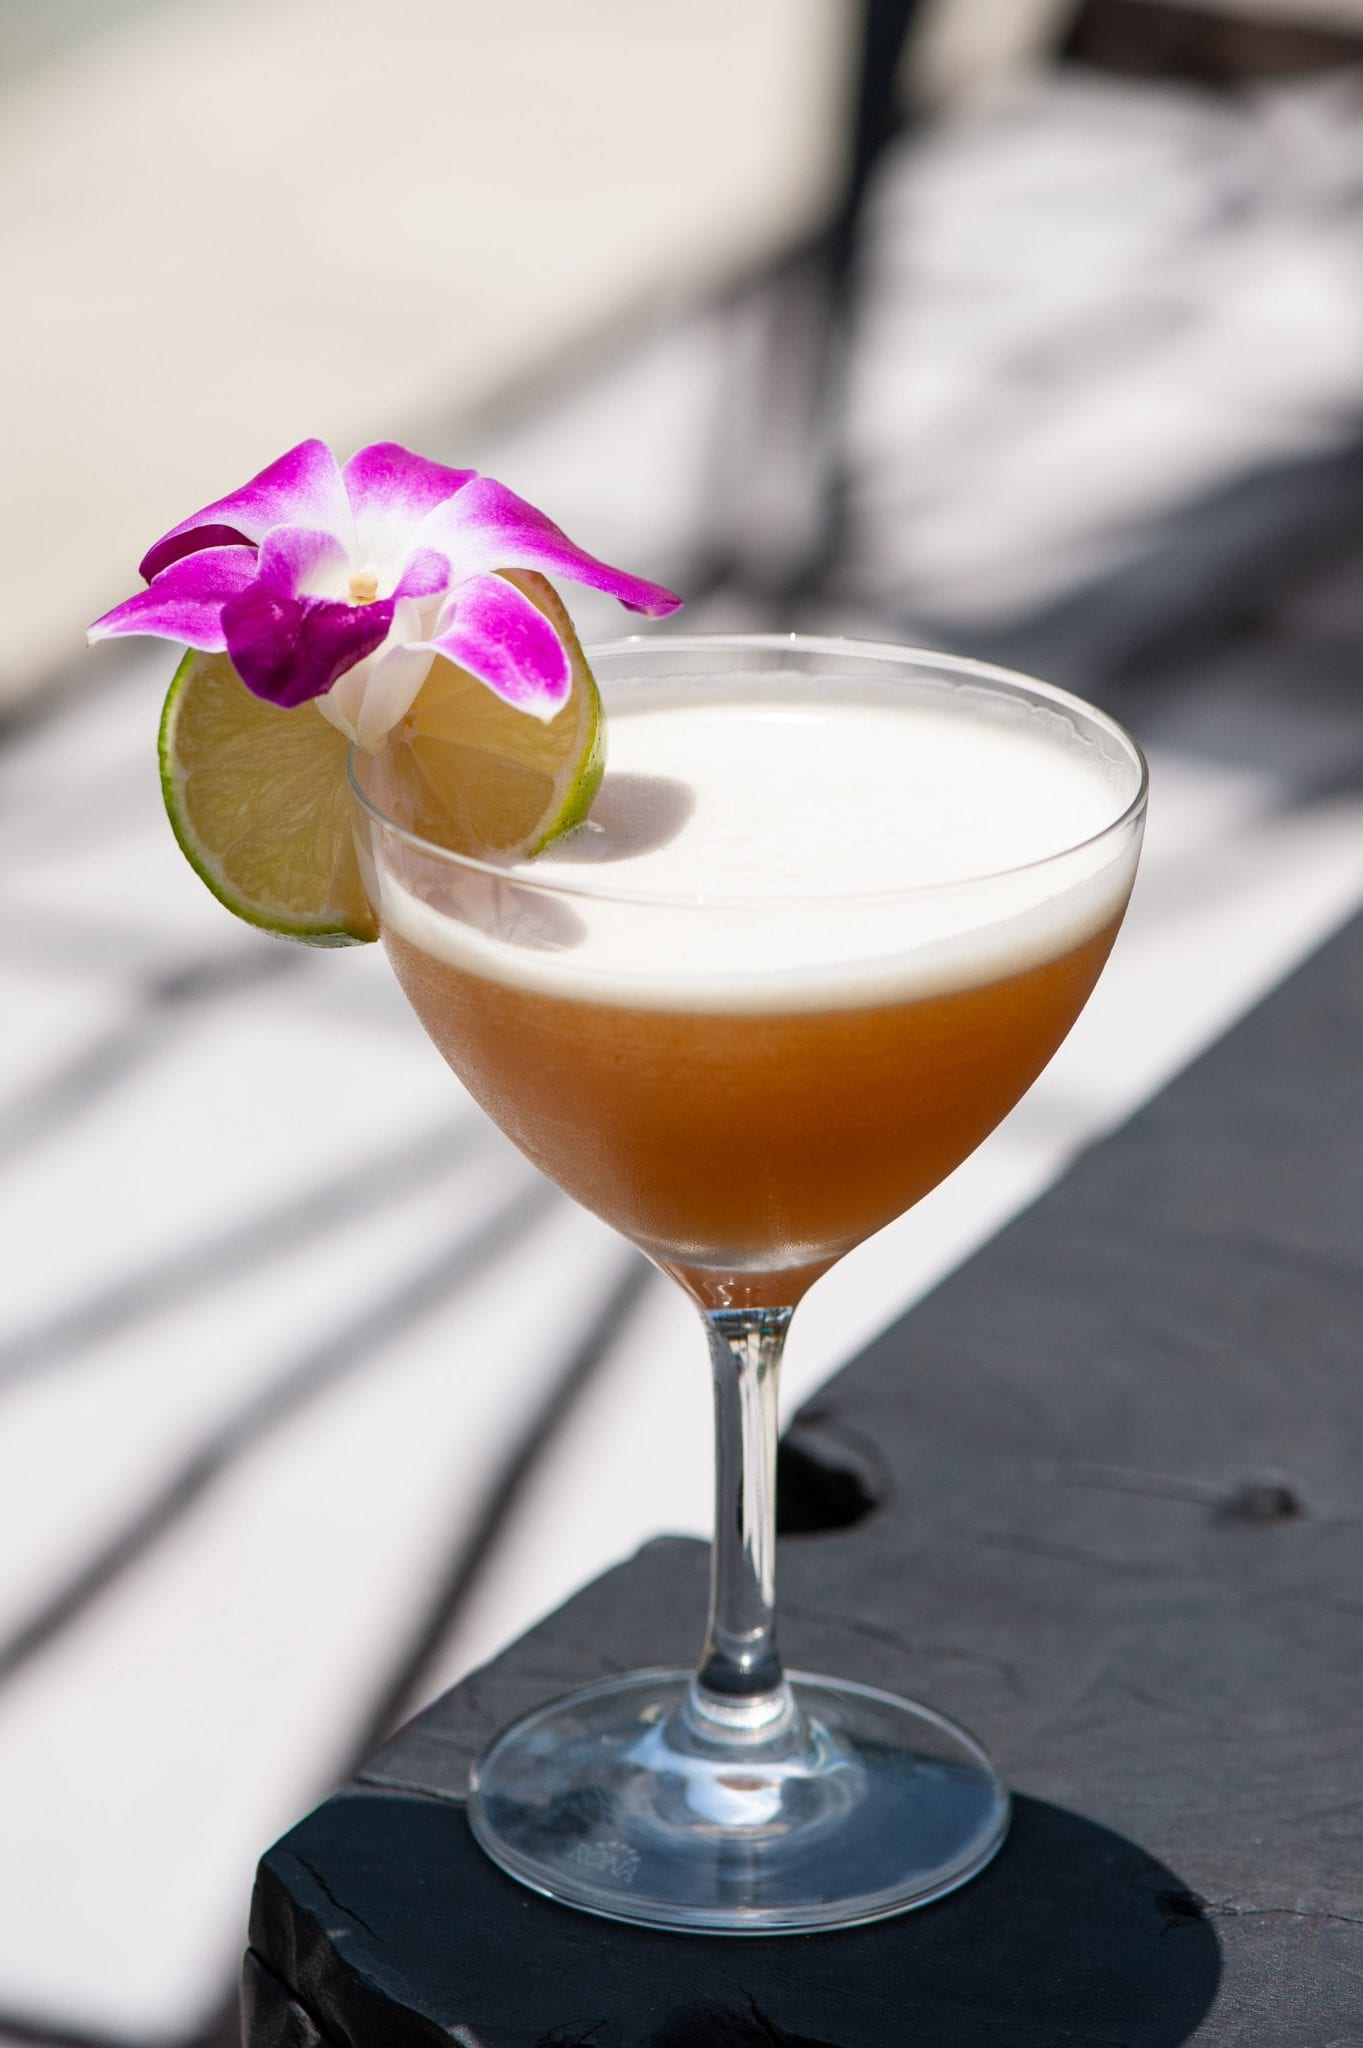 blood and sand cocktail in martini glass with slice of lime and flower